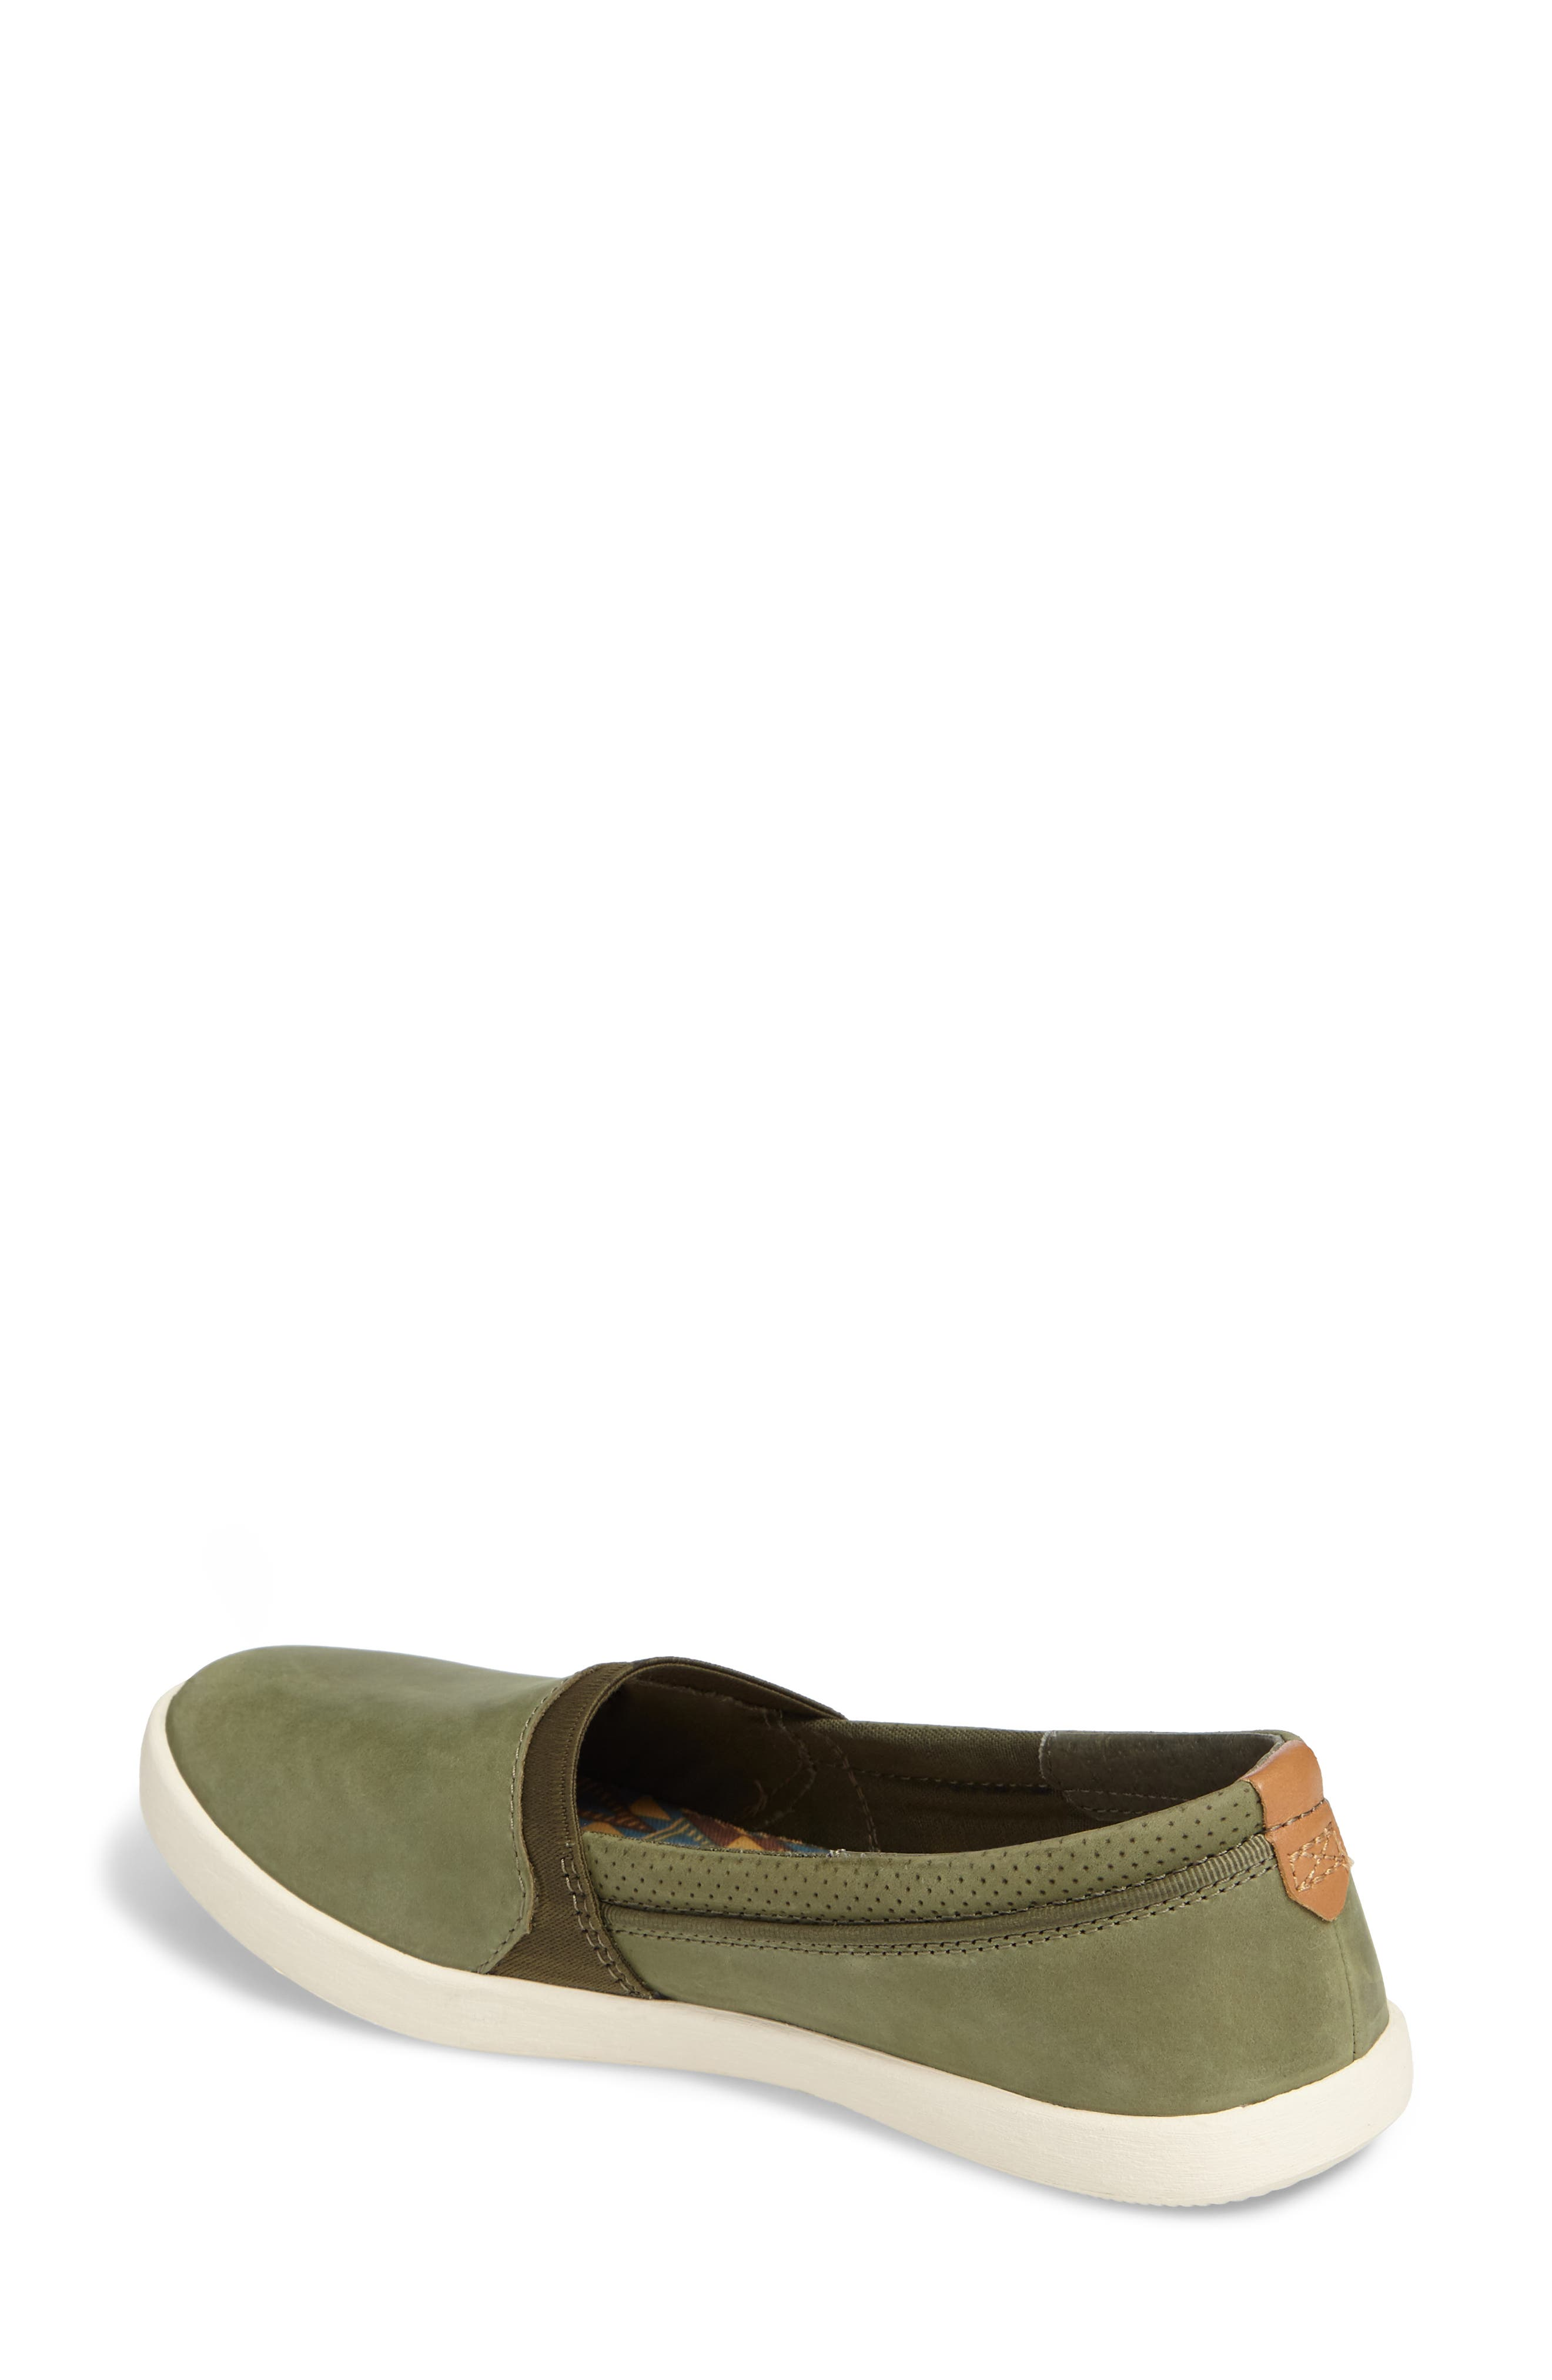 Willow Slip-On Sneaker,                             Alternate thumbnail 2, color,                             Olive Leather